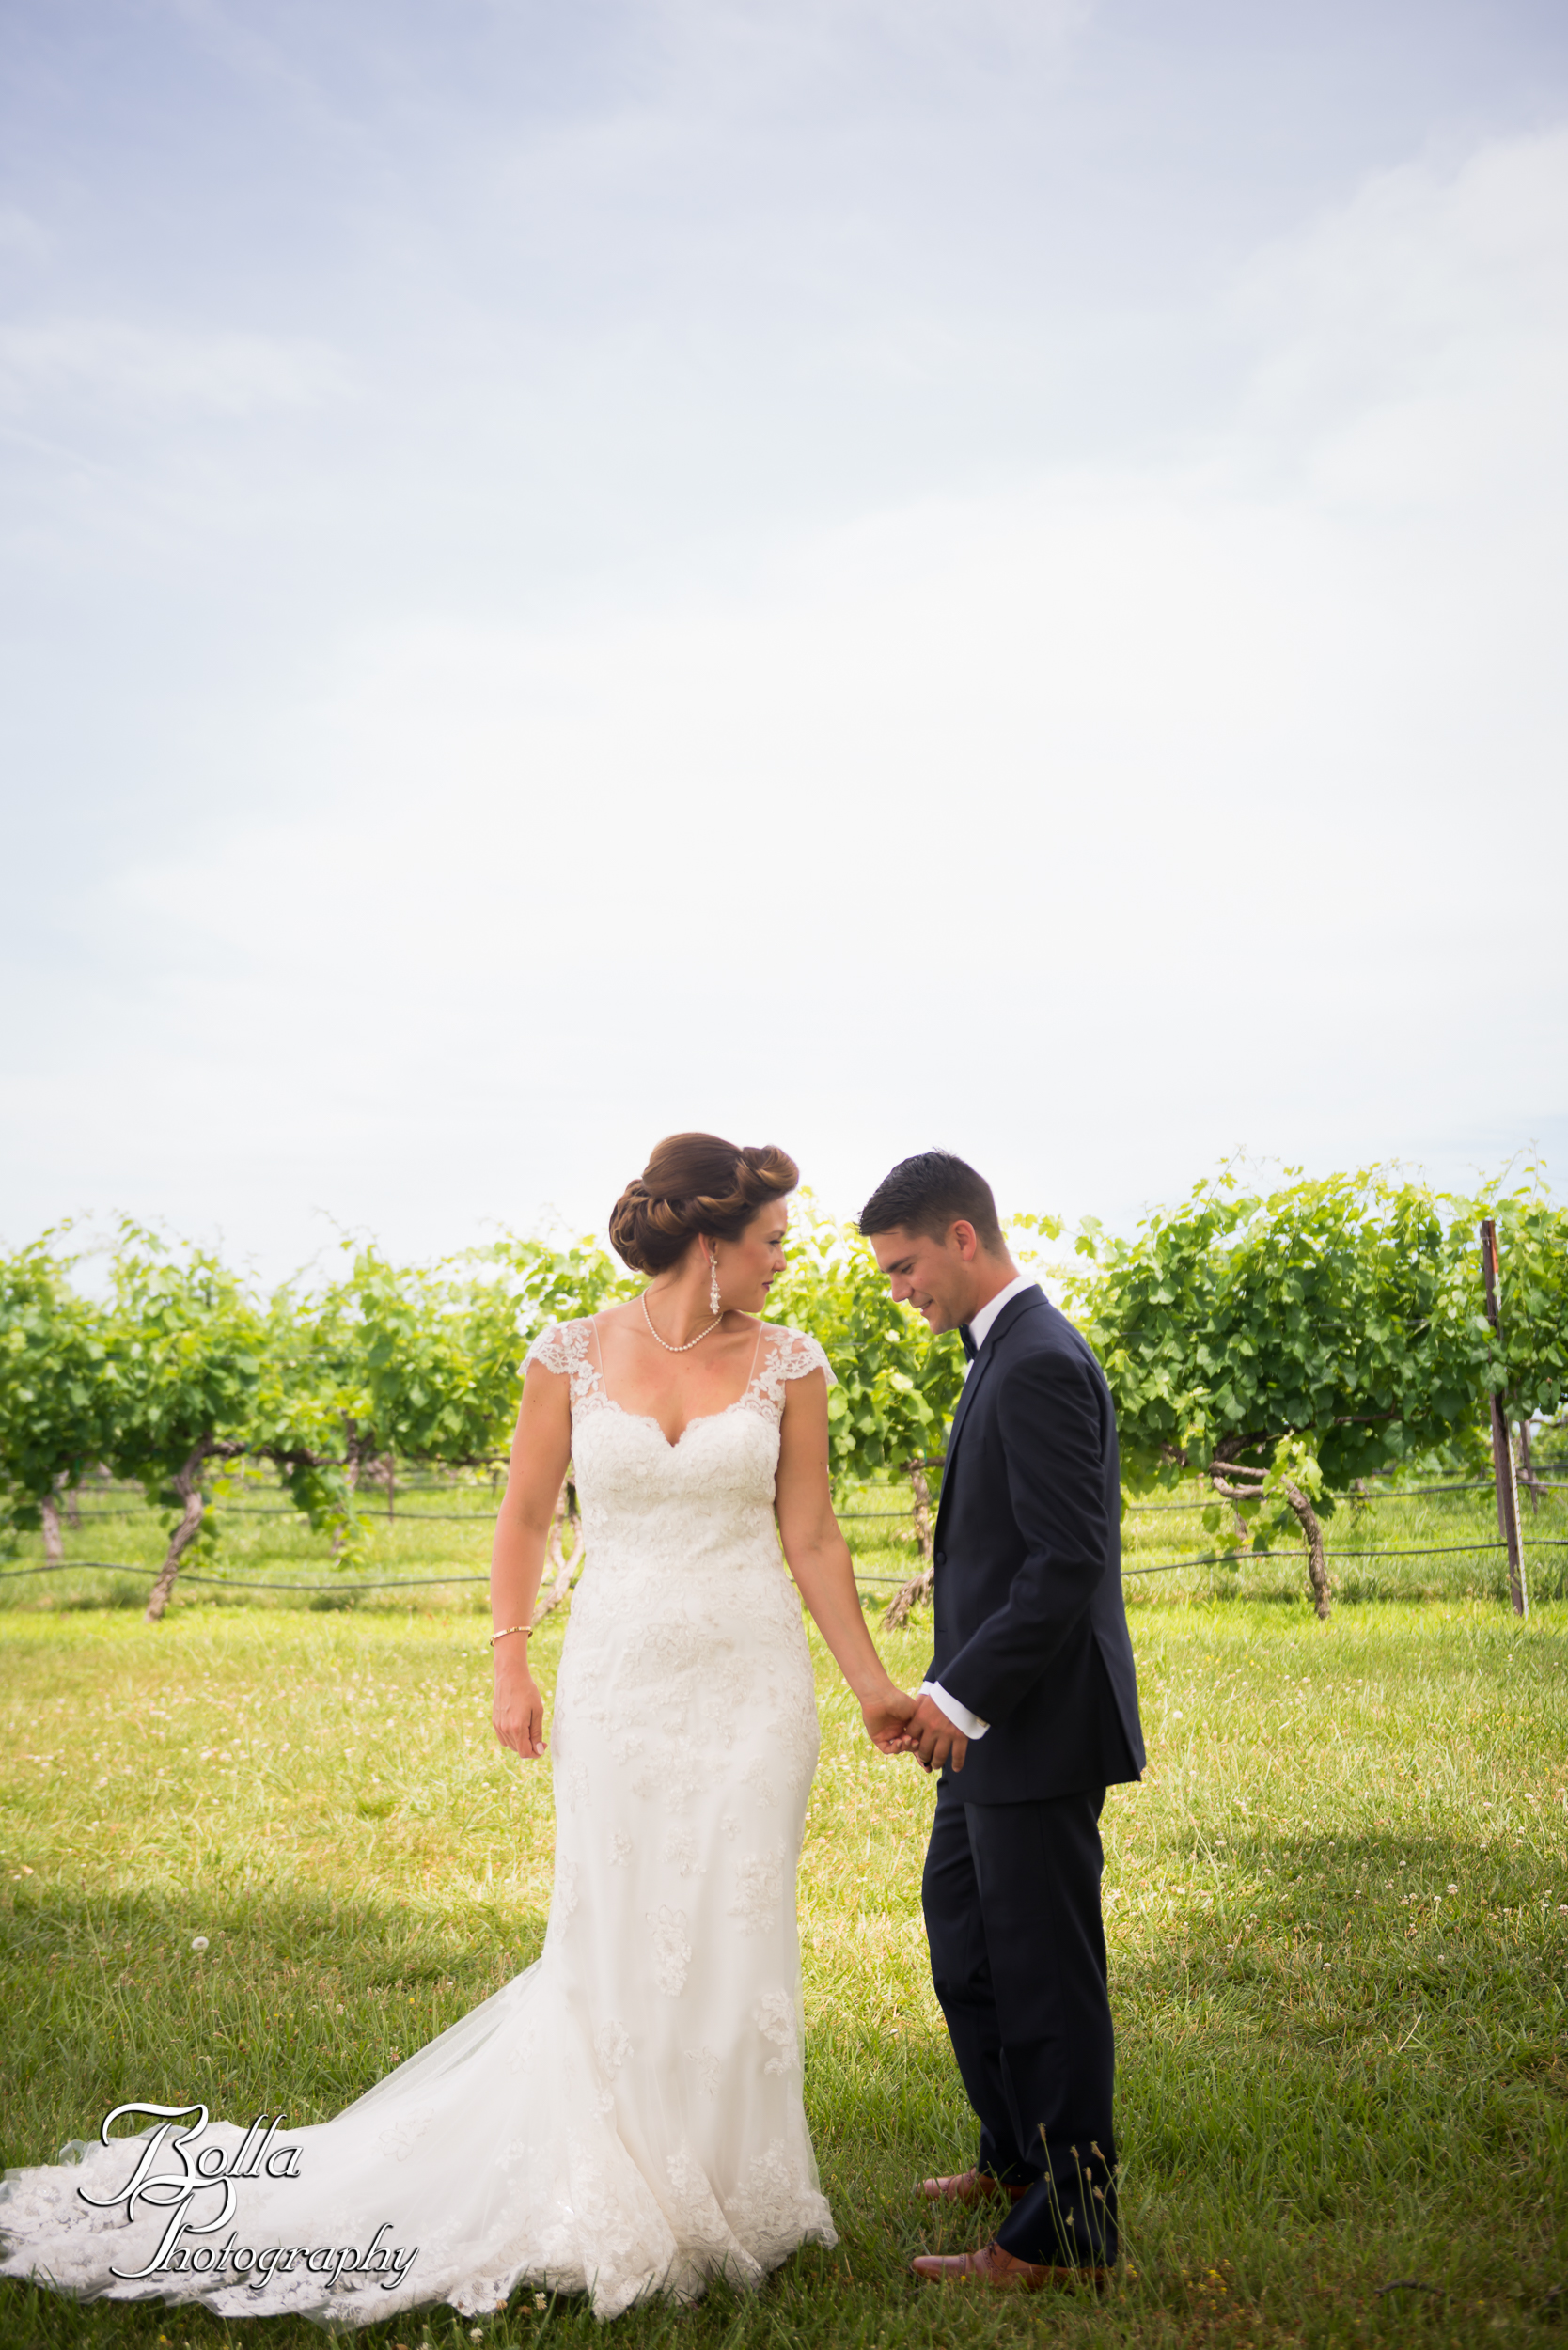 Bolla_photography_edwardsville_wedding_photographer_st_louis_weddings_Chaumette_winery_Mikusch-0137.jpg